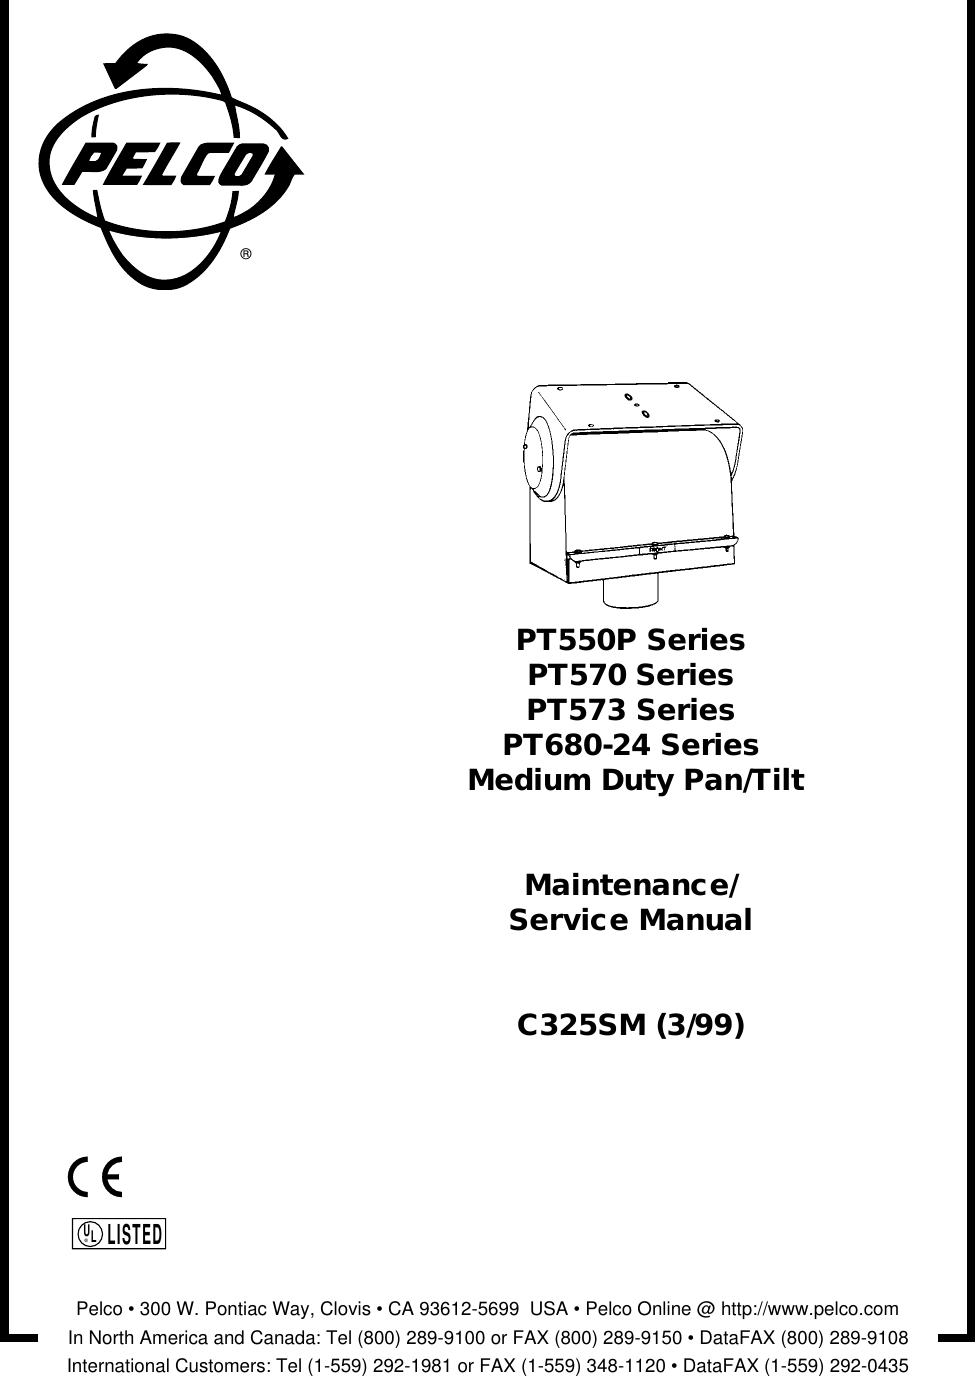 hight resolution of pelco camera accessories pt570 users manual pt550p series pt573 board a as well pelco ptz camera wiring diagram on pelco ptz wiring